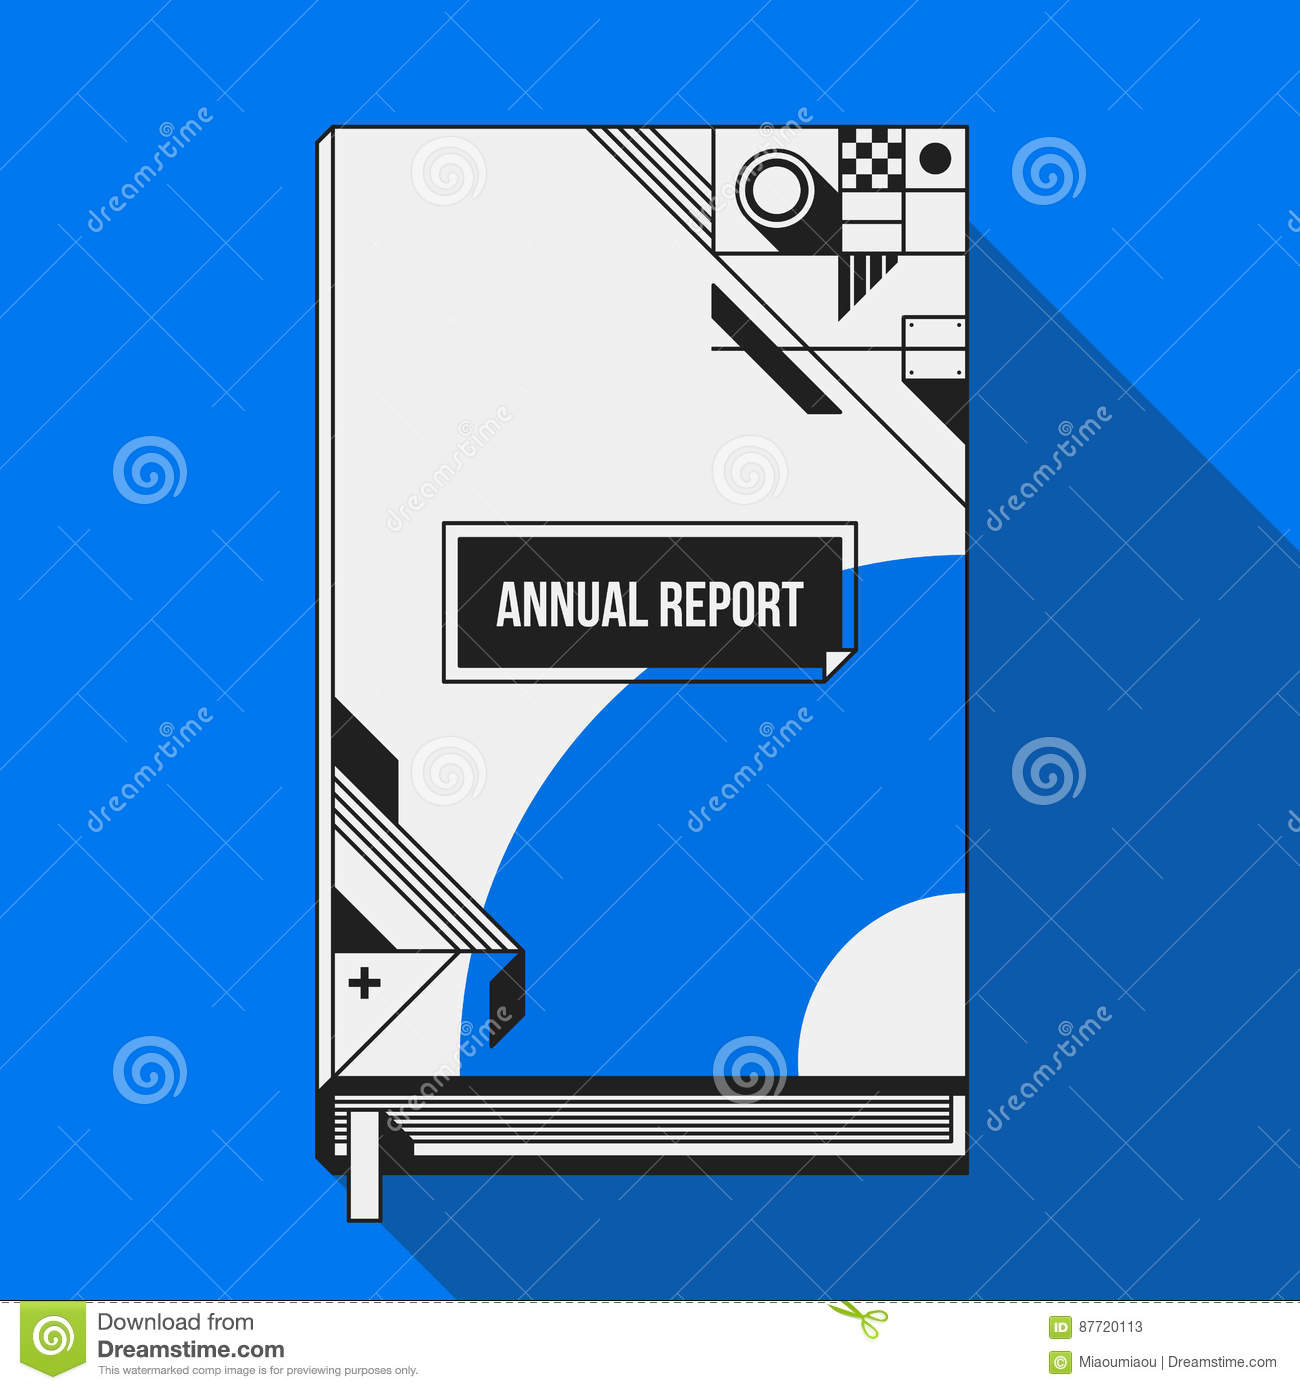 Book Cover Design Cartoon ~ Book cover print template with abstract shapes cartoon